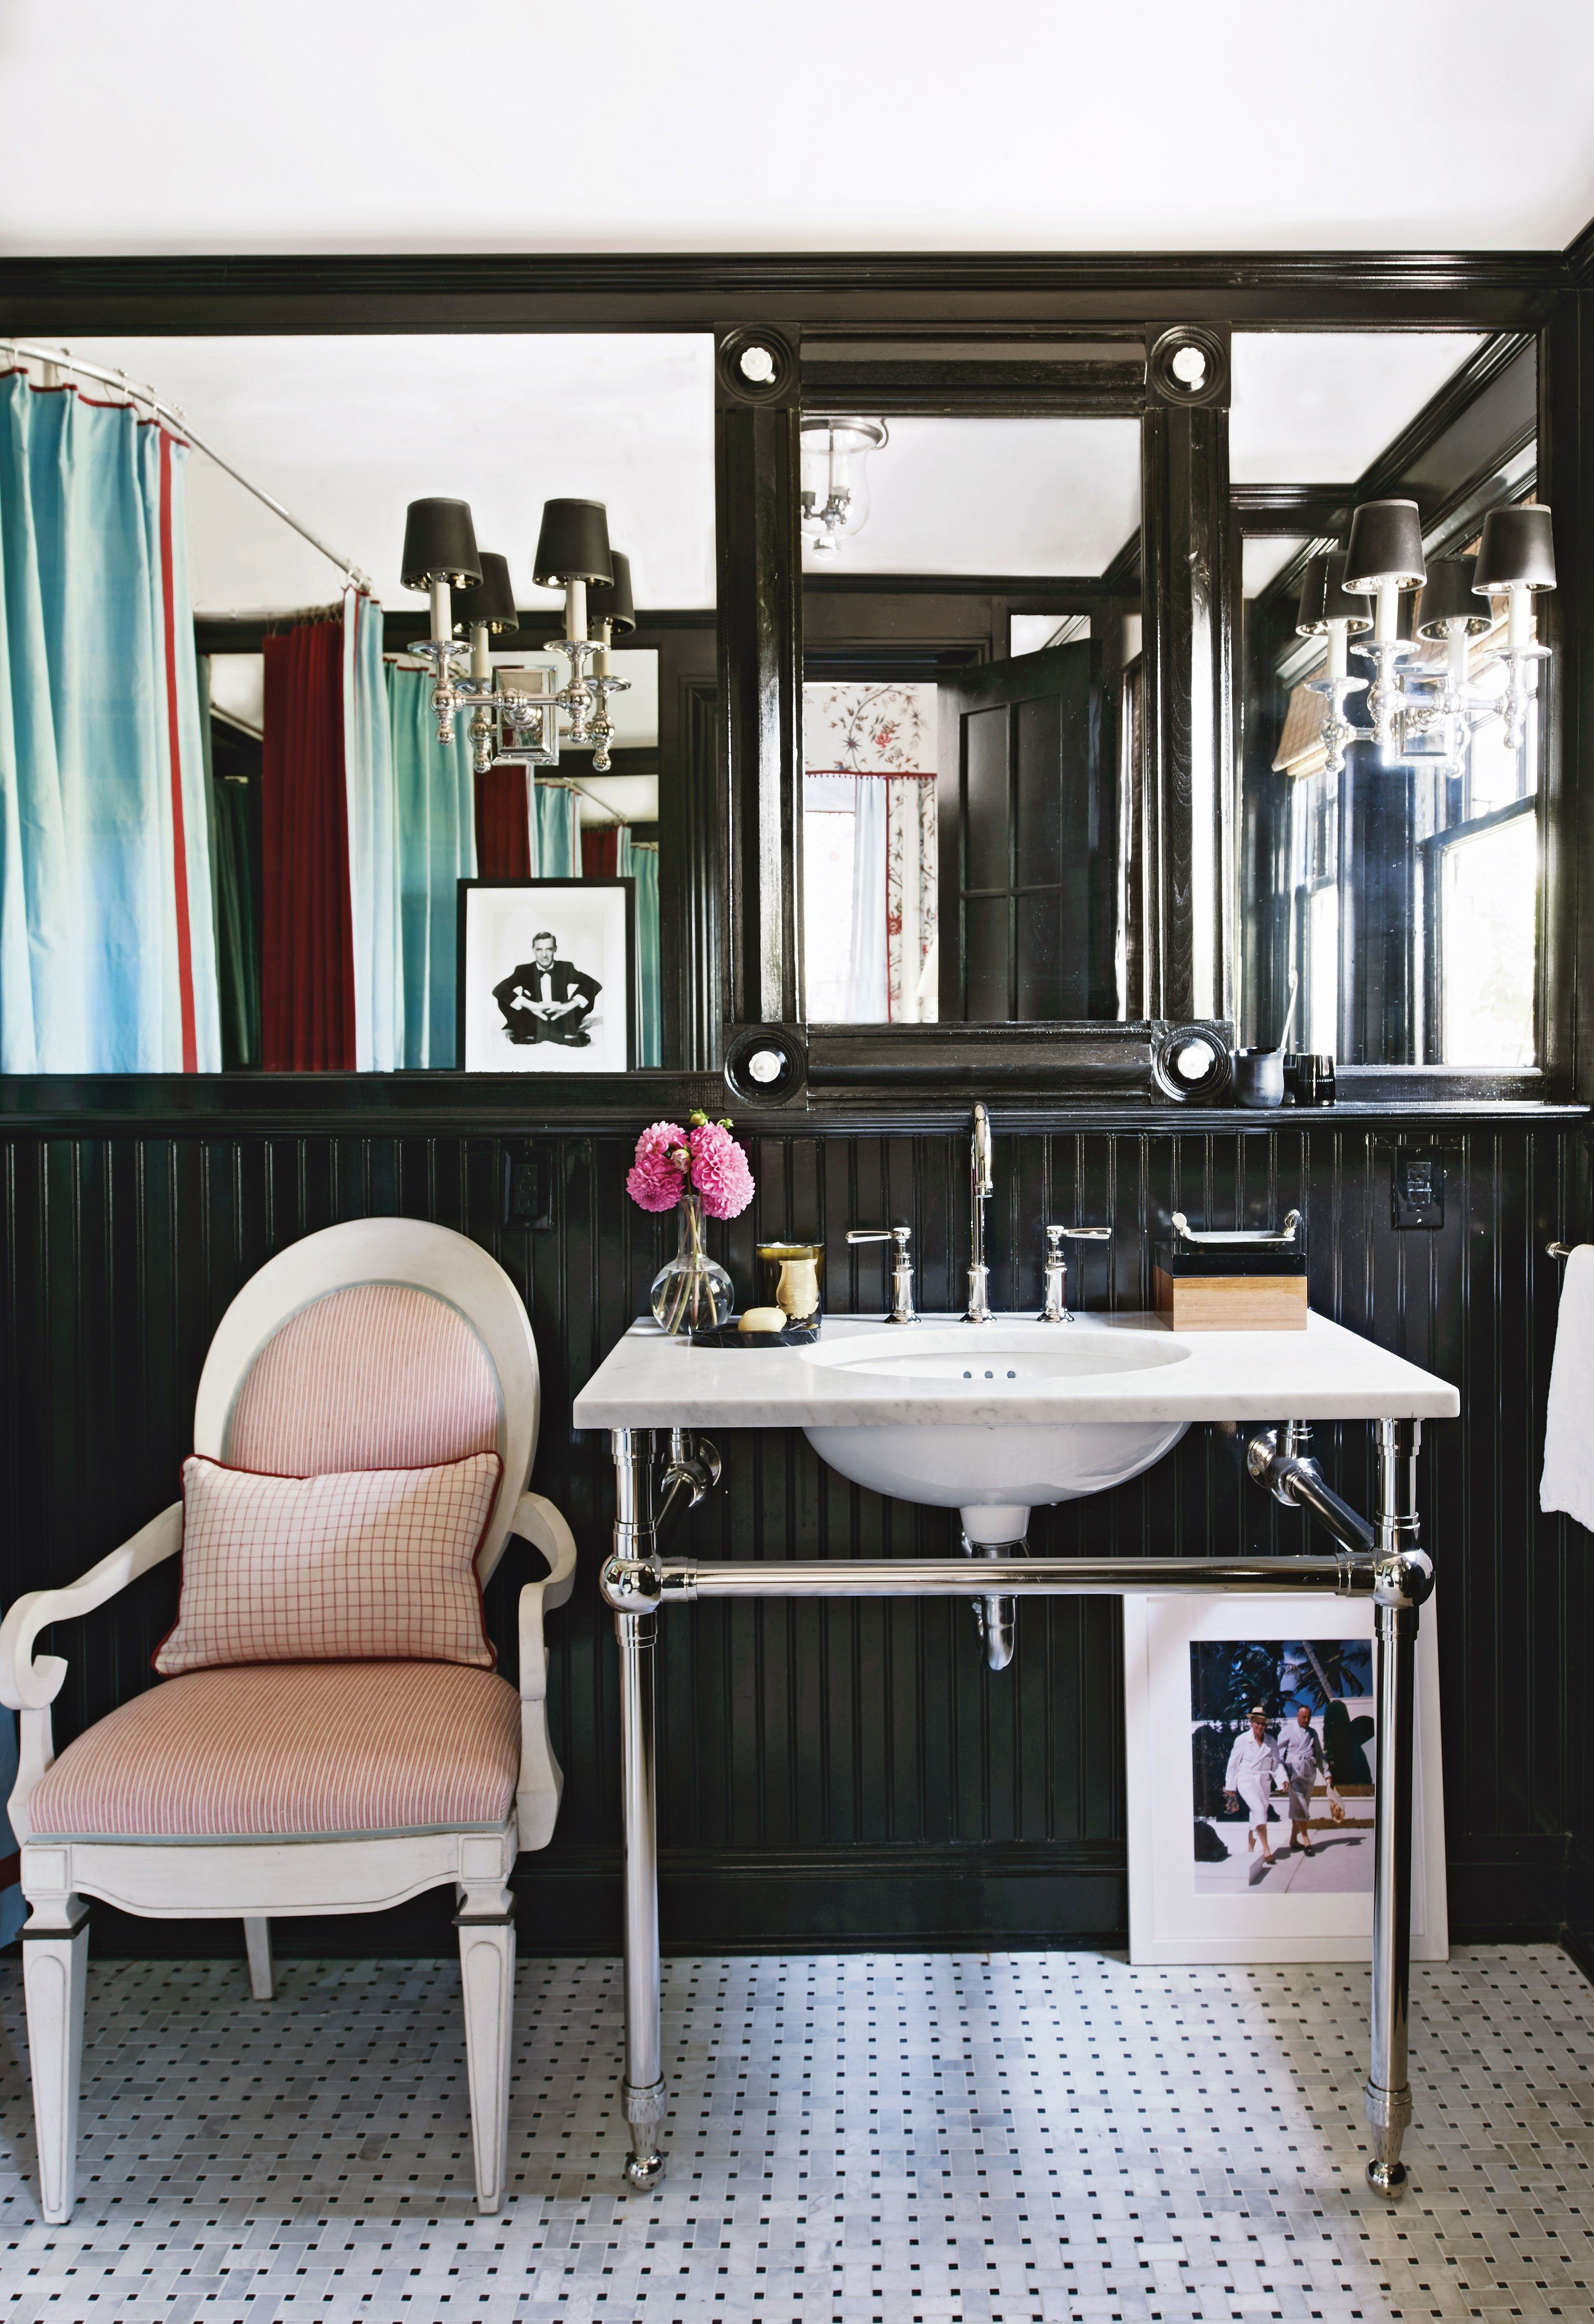 4 Bathroom Renovation Secrets from Waterworks' Cofounder Photos |  Architectural Digest